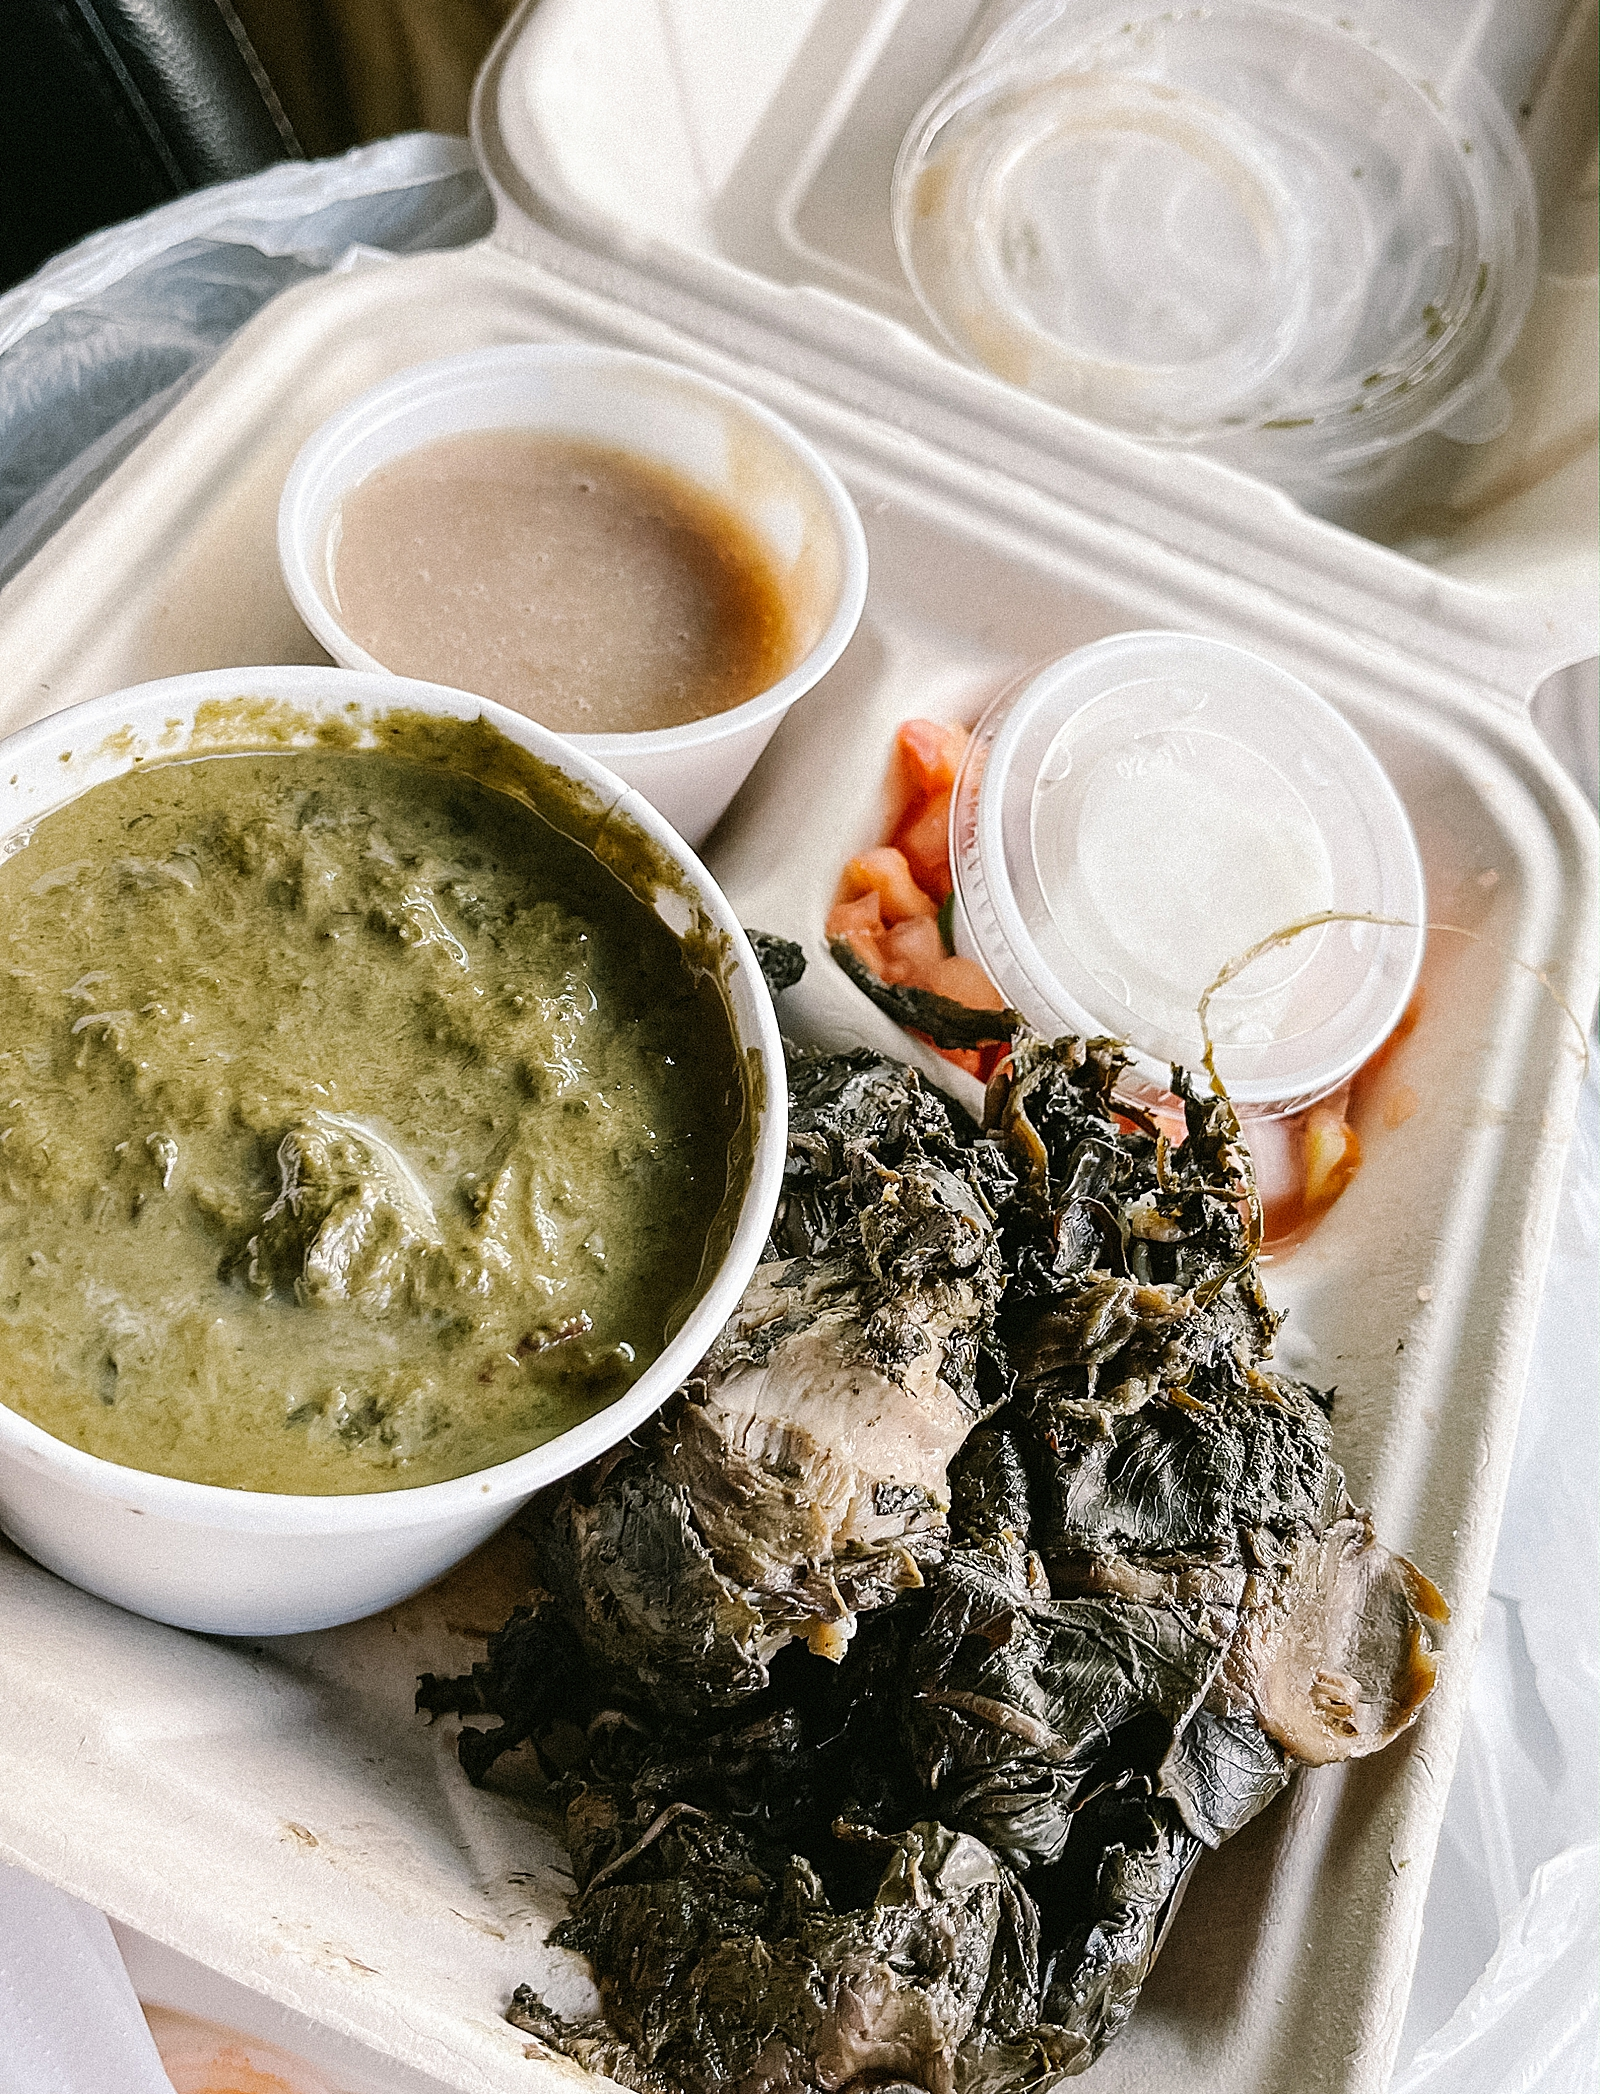 Best foods in Kaneohe